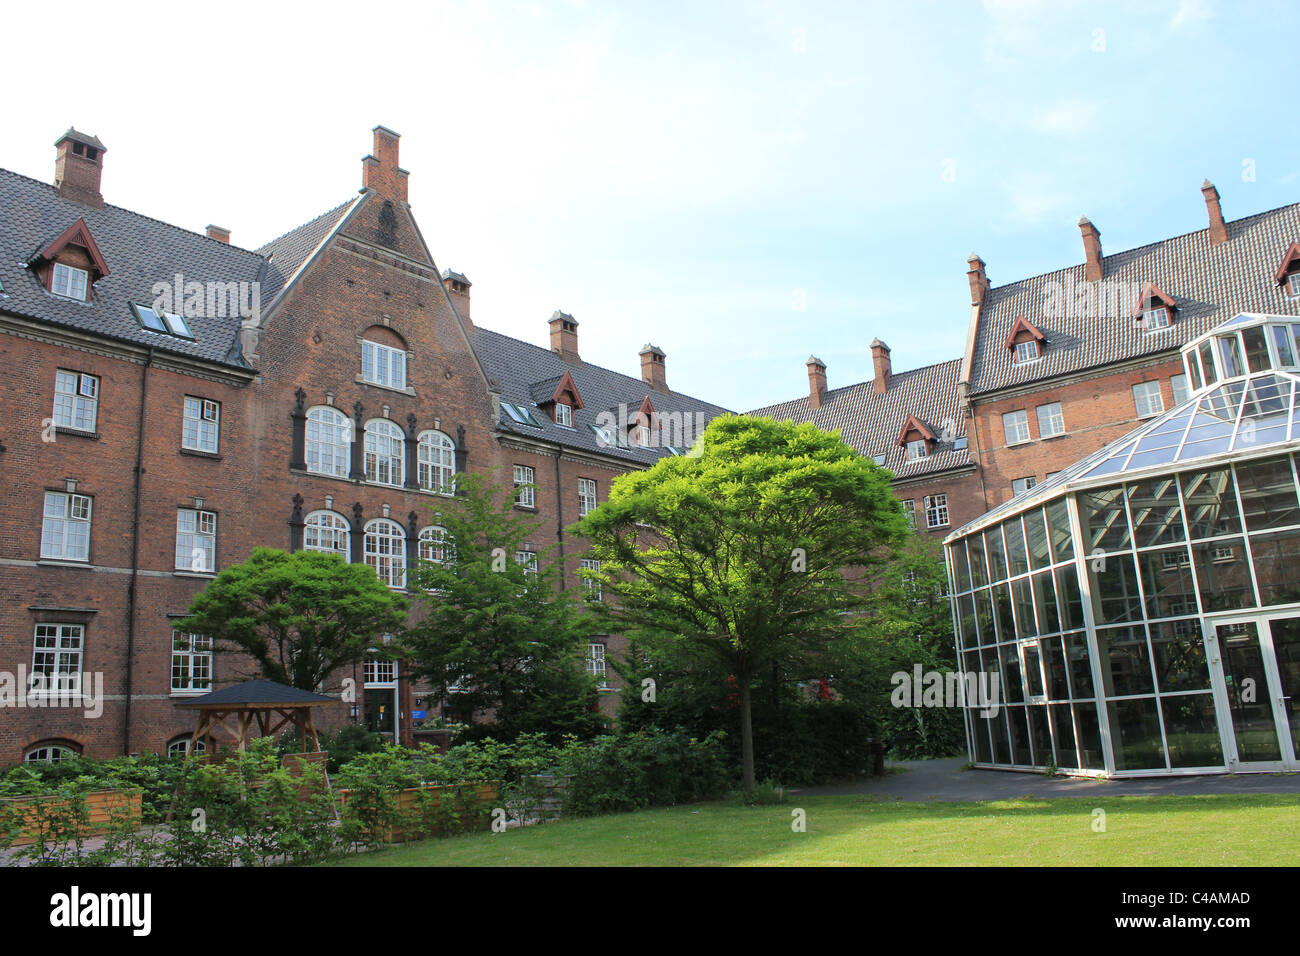 Danish old people's home which has a conservatory in the courtyard. - Stock Image